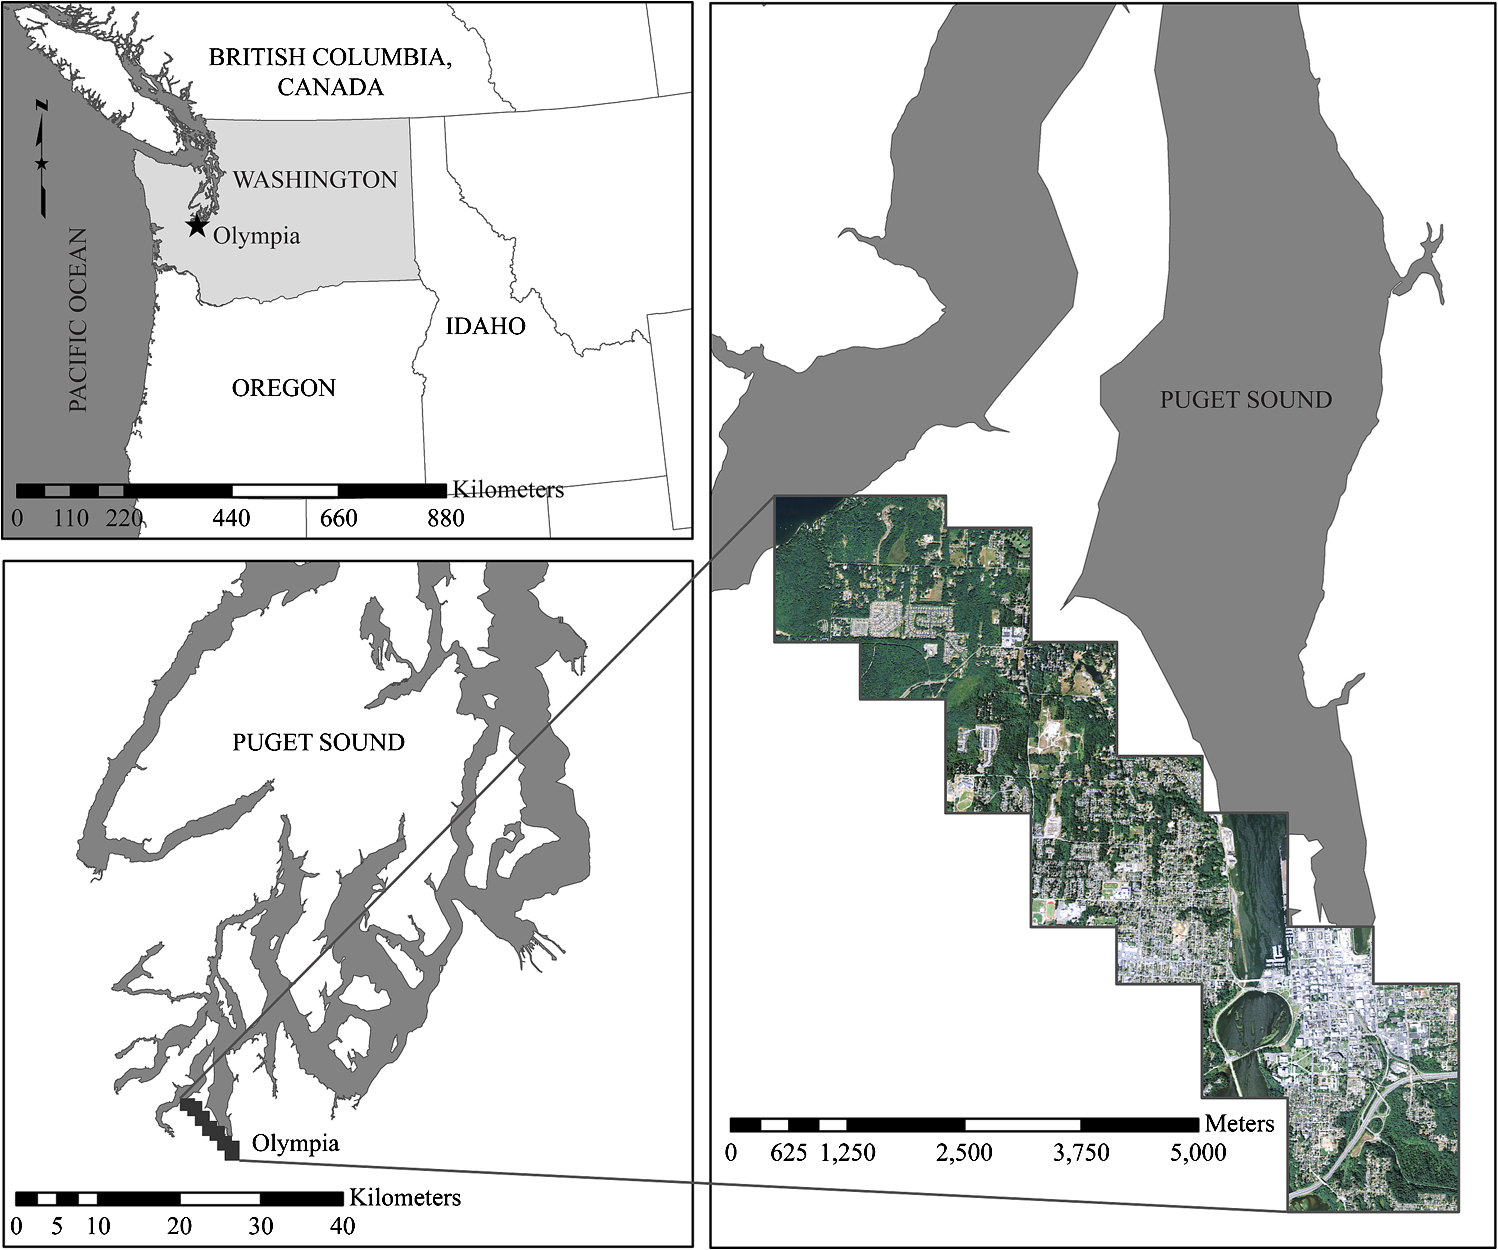 Evaluation of the contribution of LiDAR data and postclassification